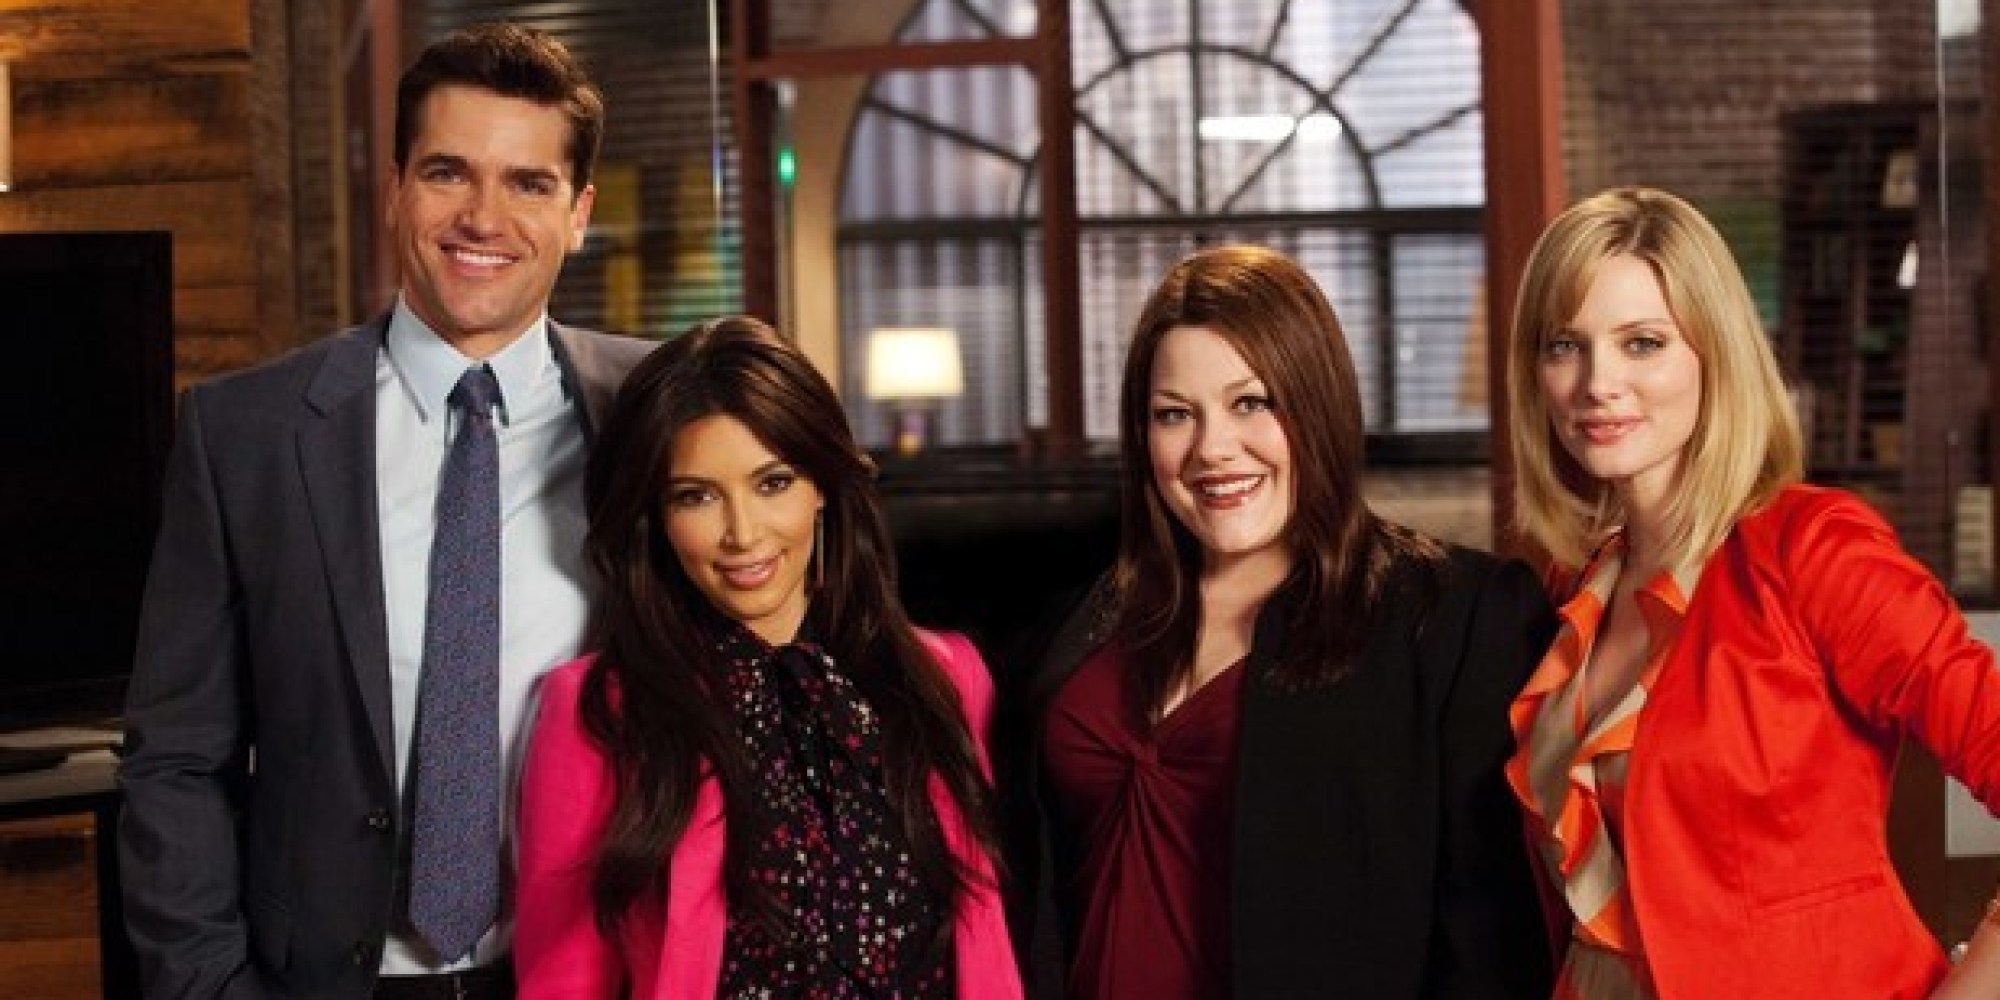 Lifetime 39 s 39 drop dead diva 39 will end after season 6 huffpost for Drop dea diva